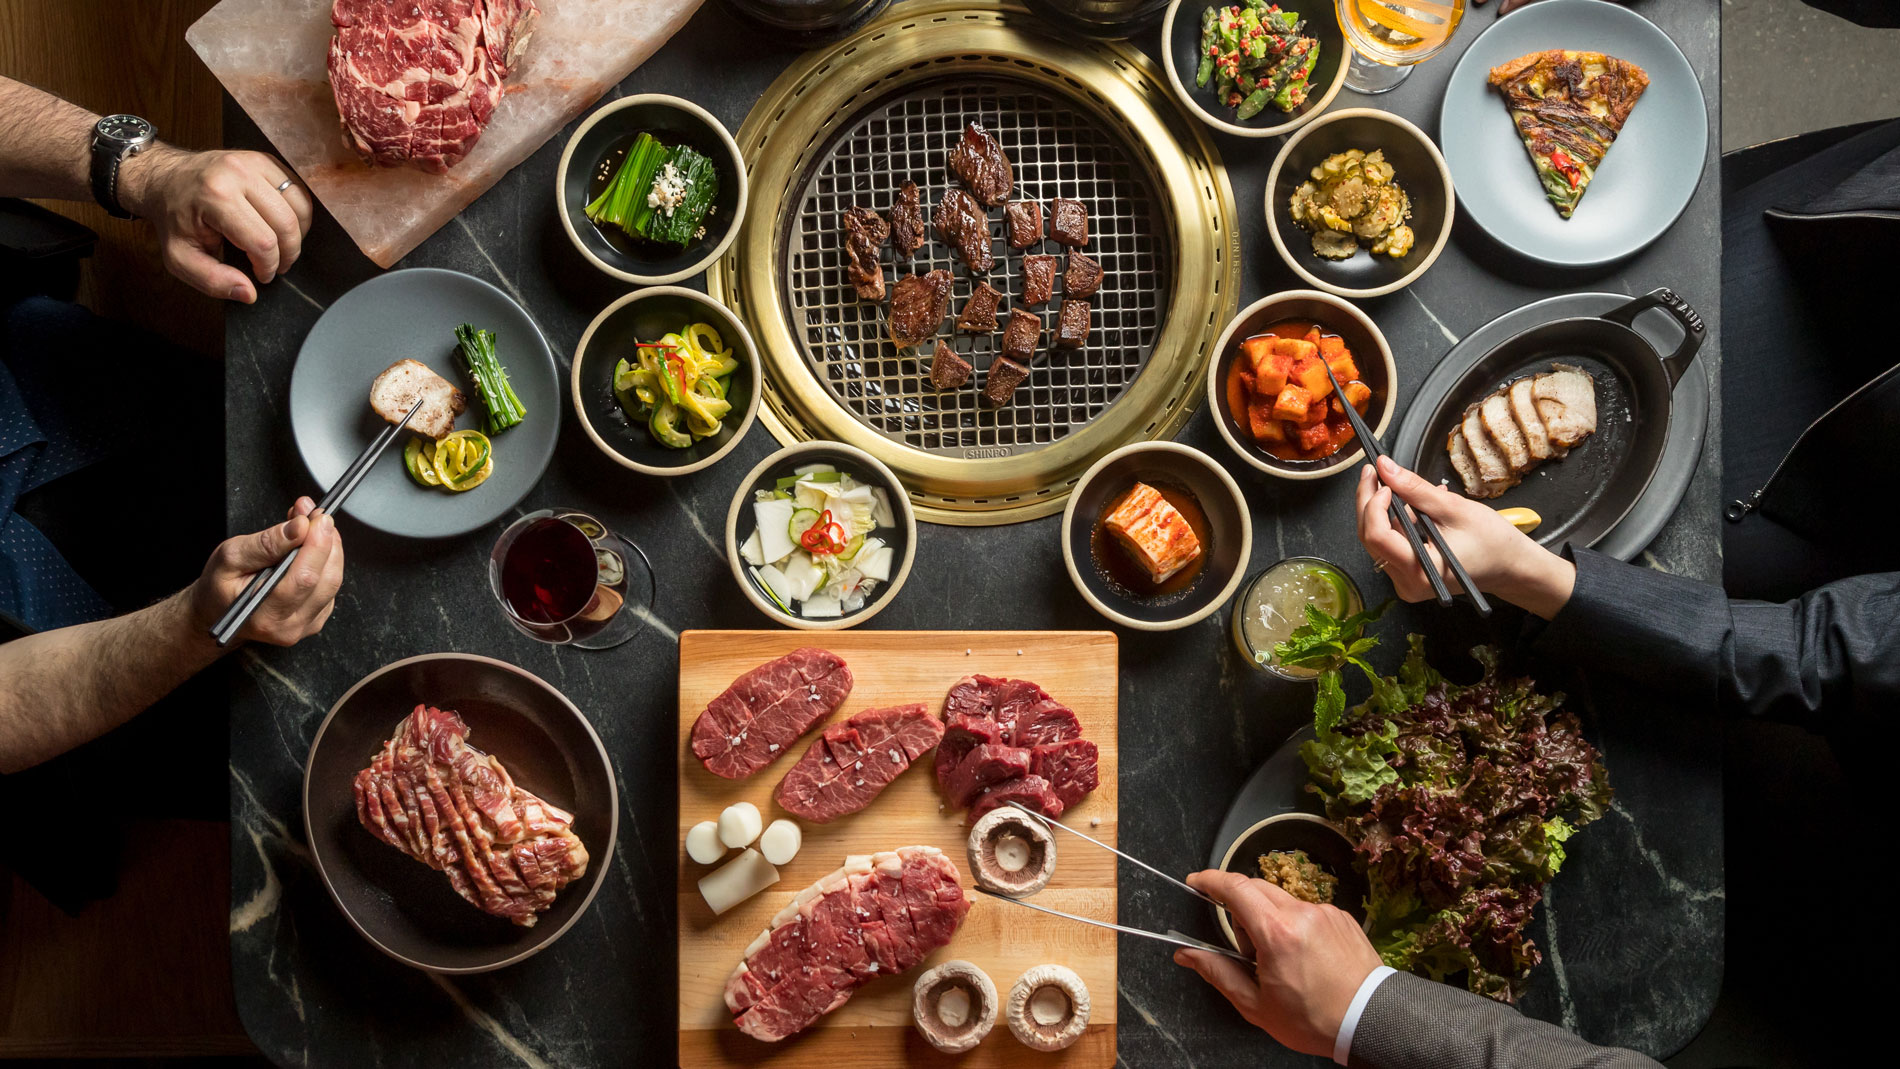 A Complete Reimagining of the All-American Steakhouse at NYC's Cote